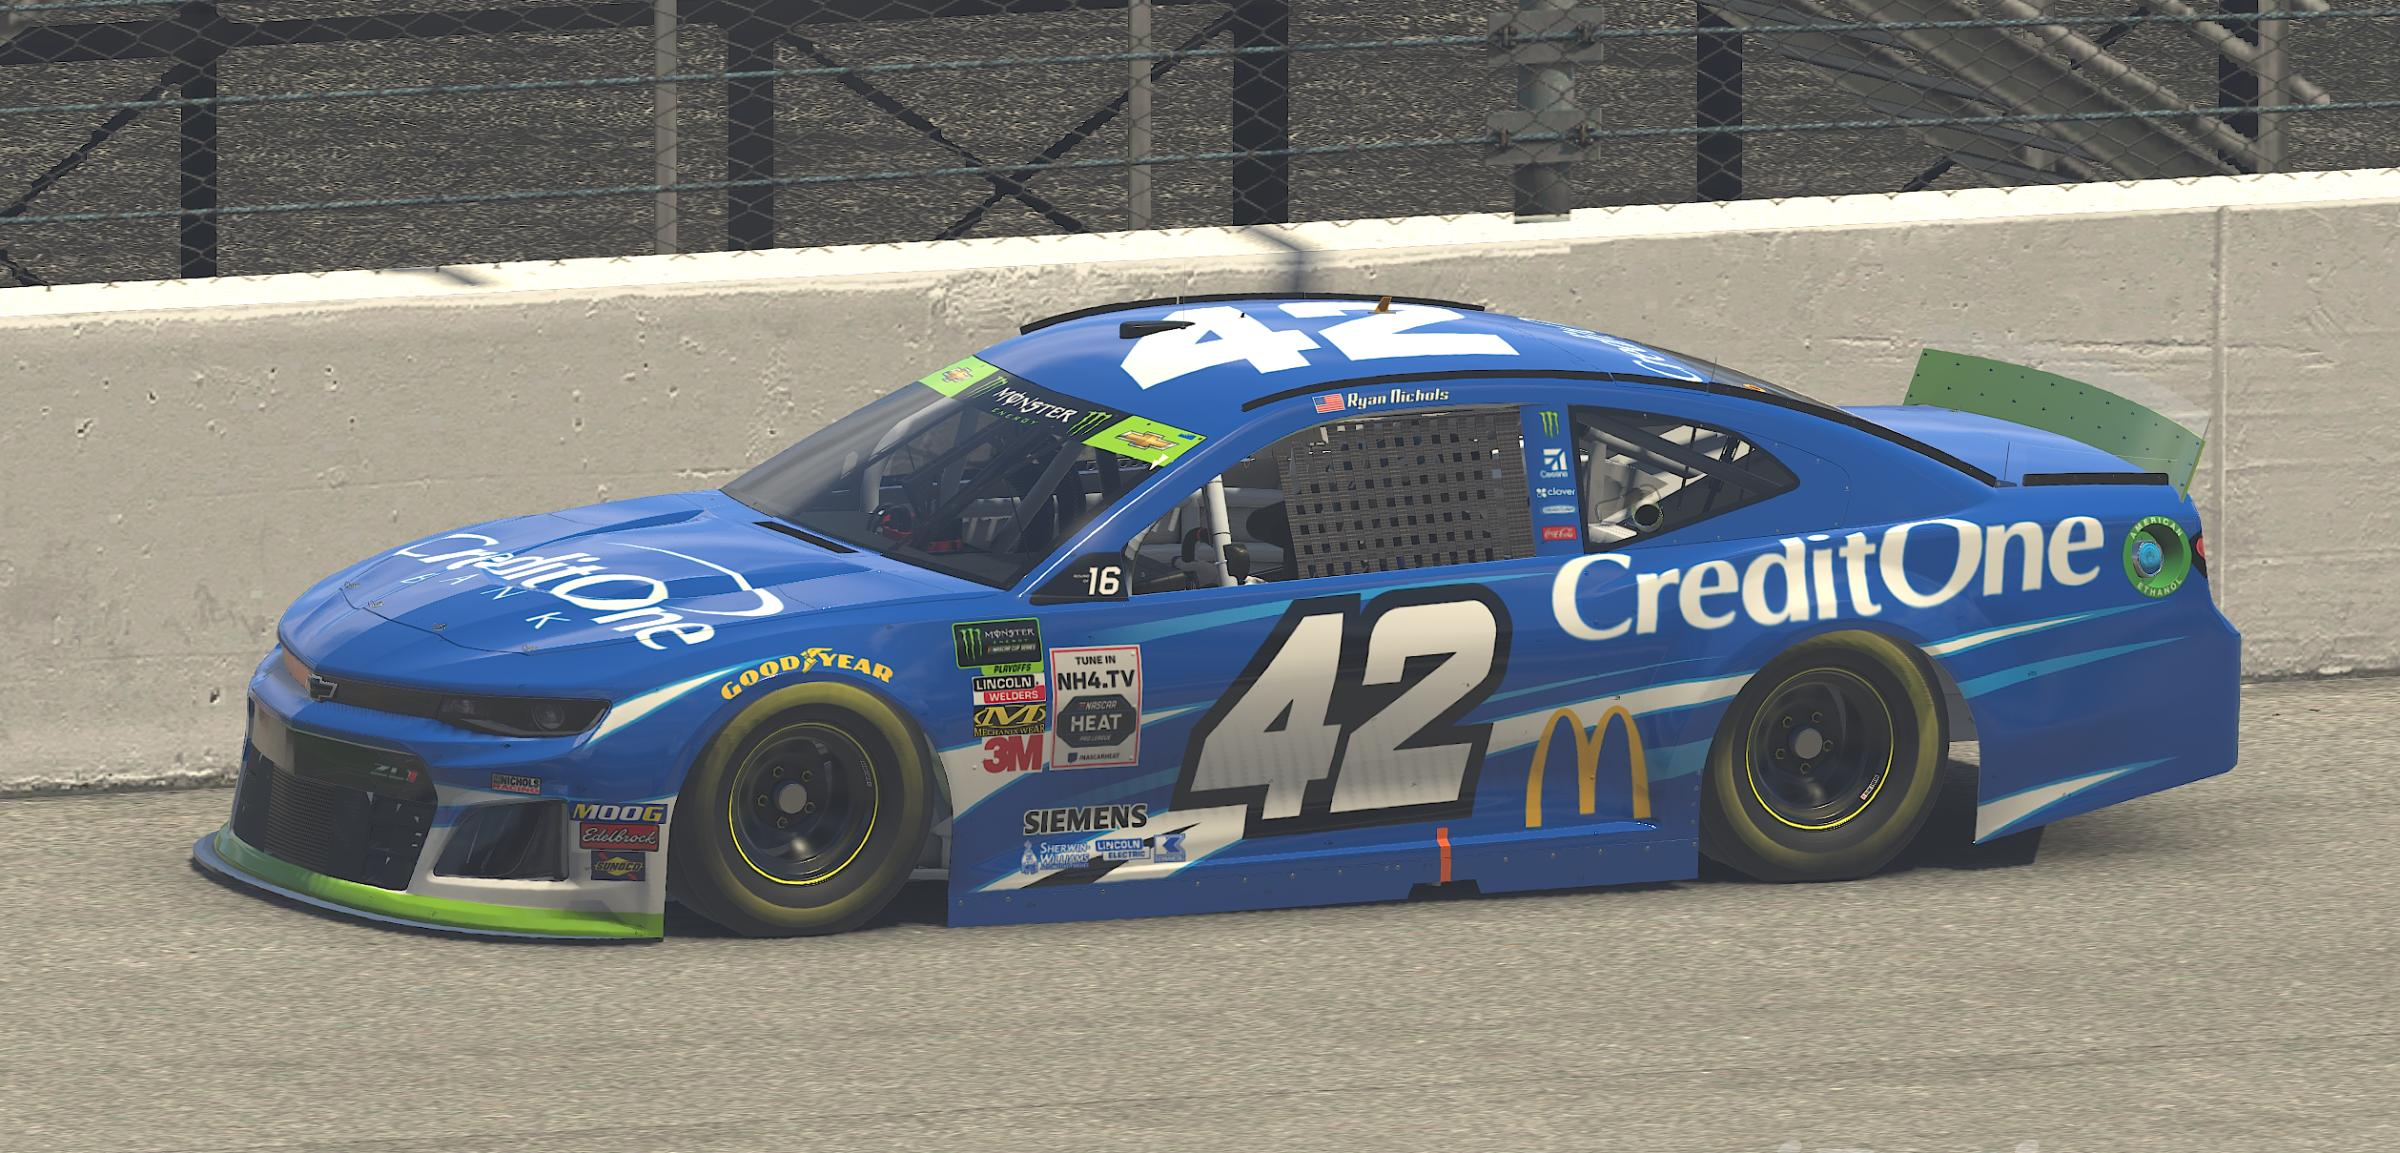 Preview of 2019 Kyle Larson Credit One Bank Chevy ZL1 Playoff Version by Ryan Nichols2